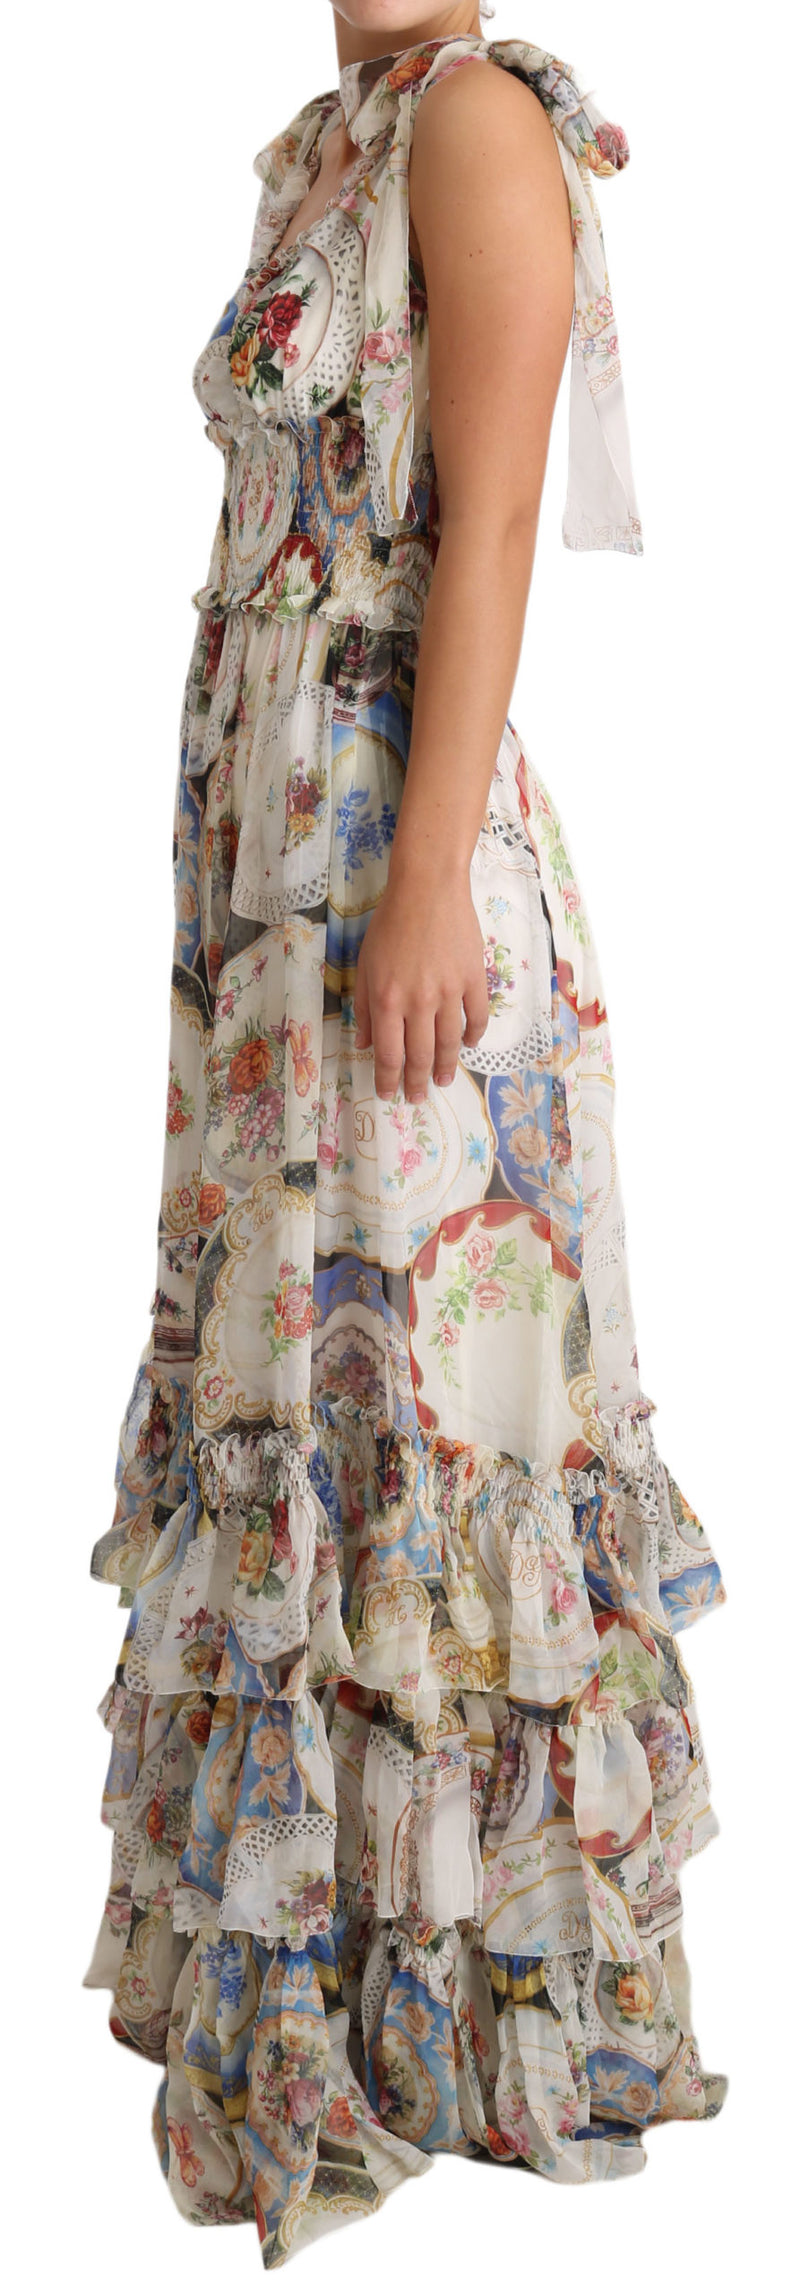 Silk White Floral Sleeveless Ruffle Dress